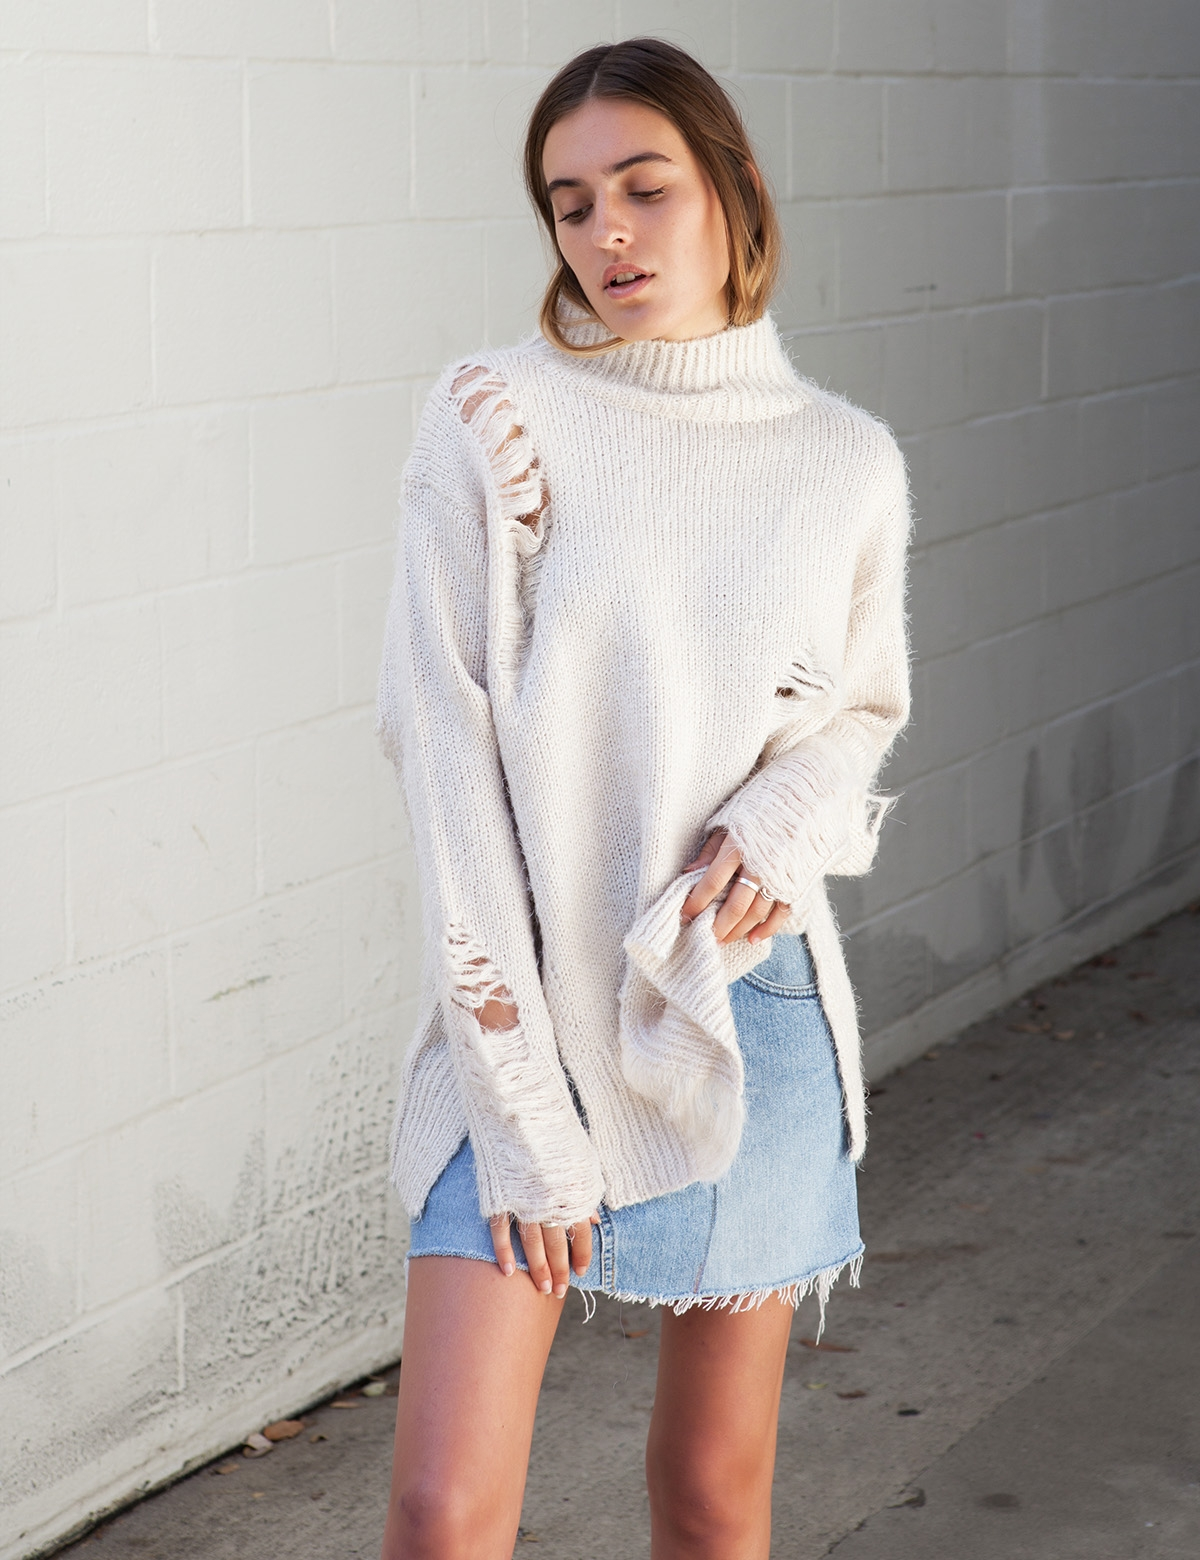 Superego Cream Knit Sweater